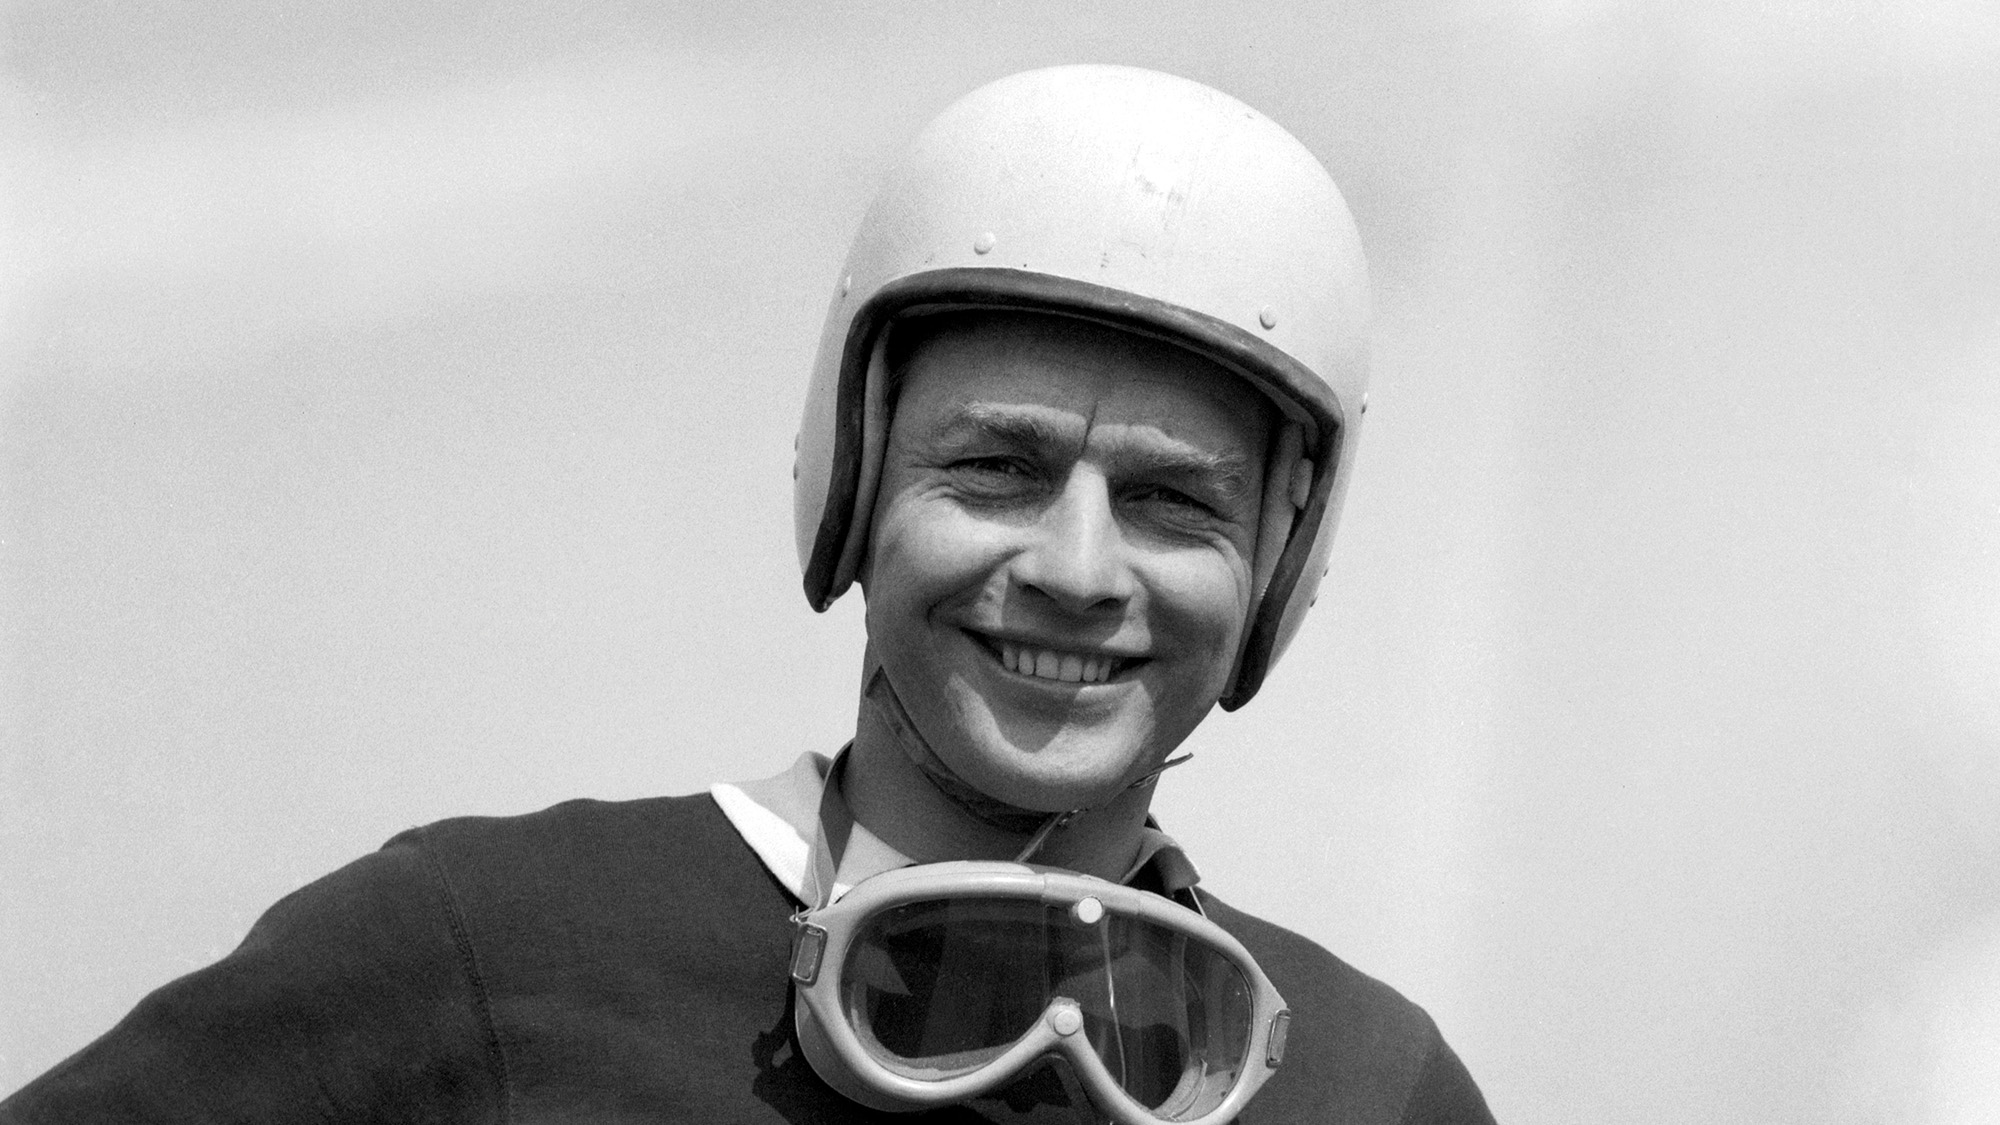 Ron Flockhart in helmet and with goggles around his neck